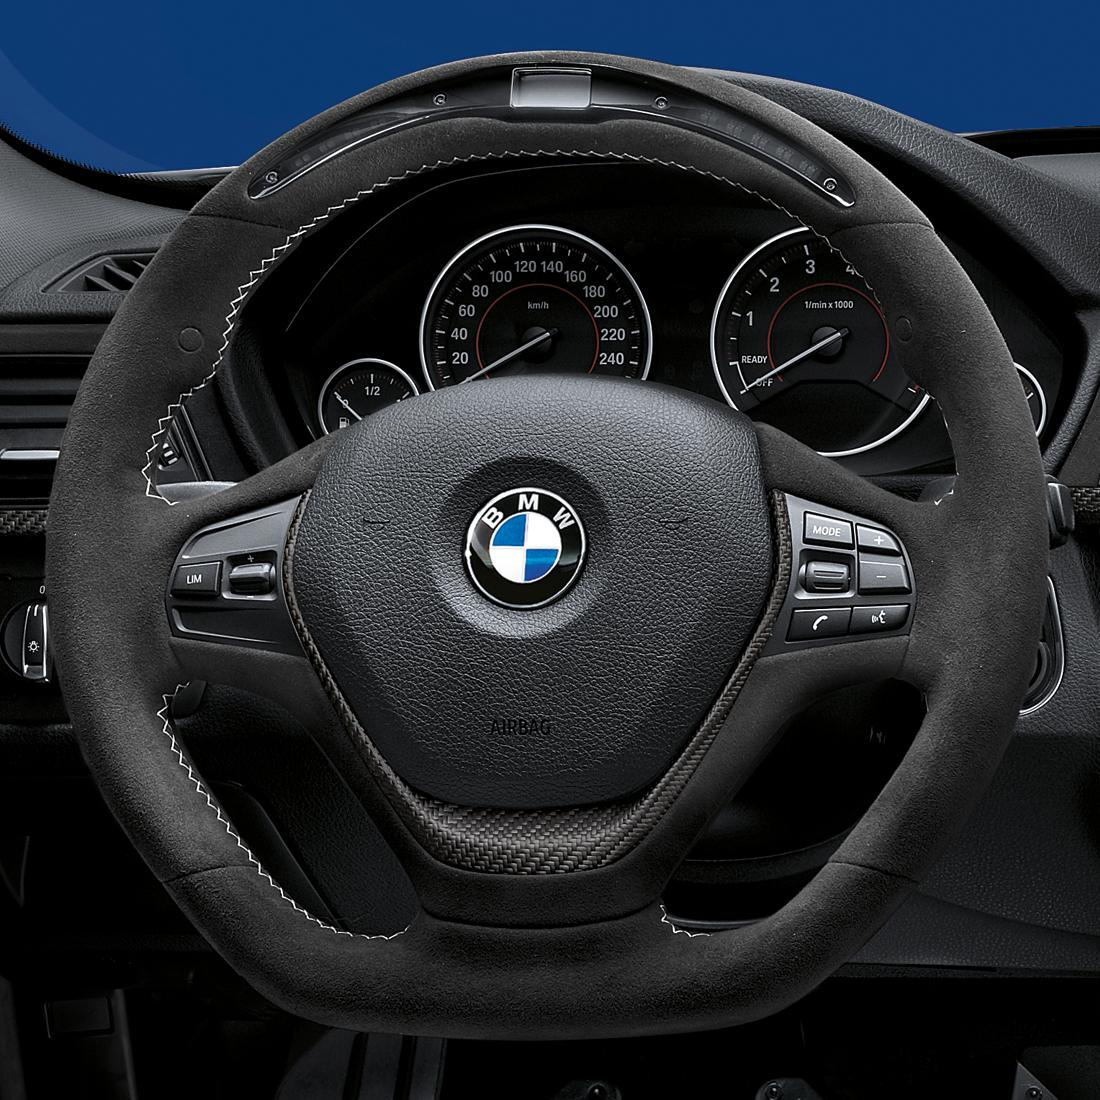 Coupe Series bmw m performance steering wheel ShopBMWUSA.com: BMW M PERFORMANCE ELECTRONIC STEERING WHEEL FOR ...